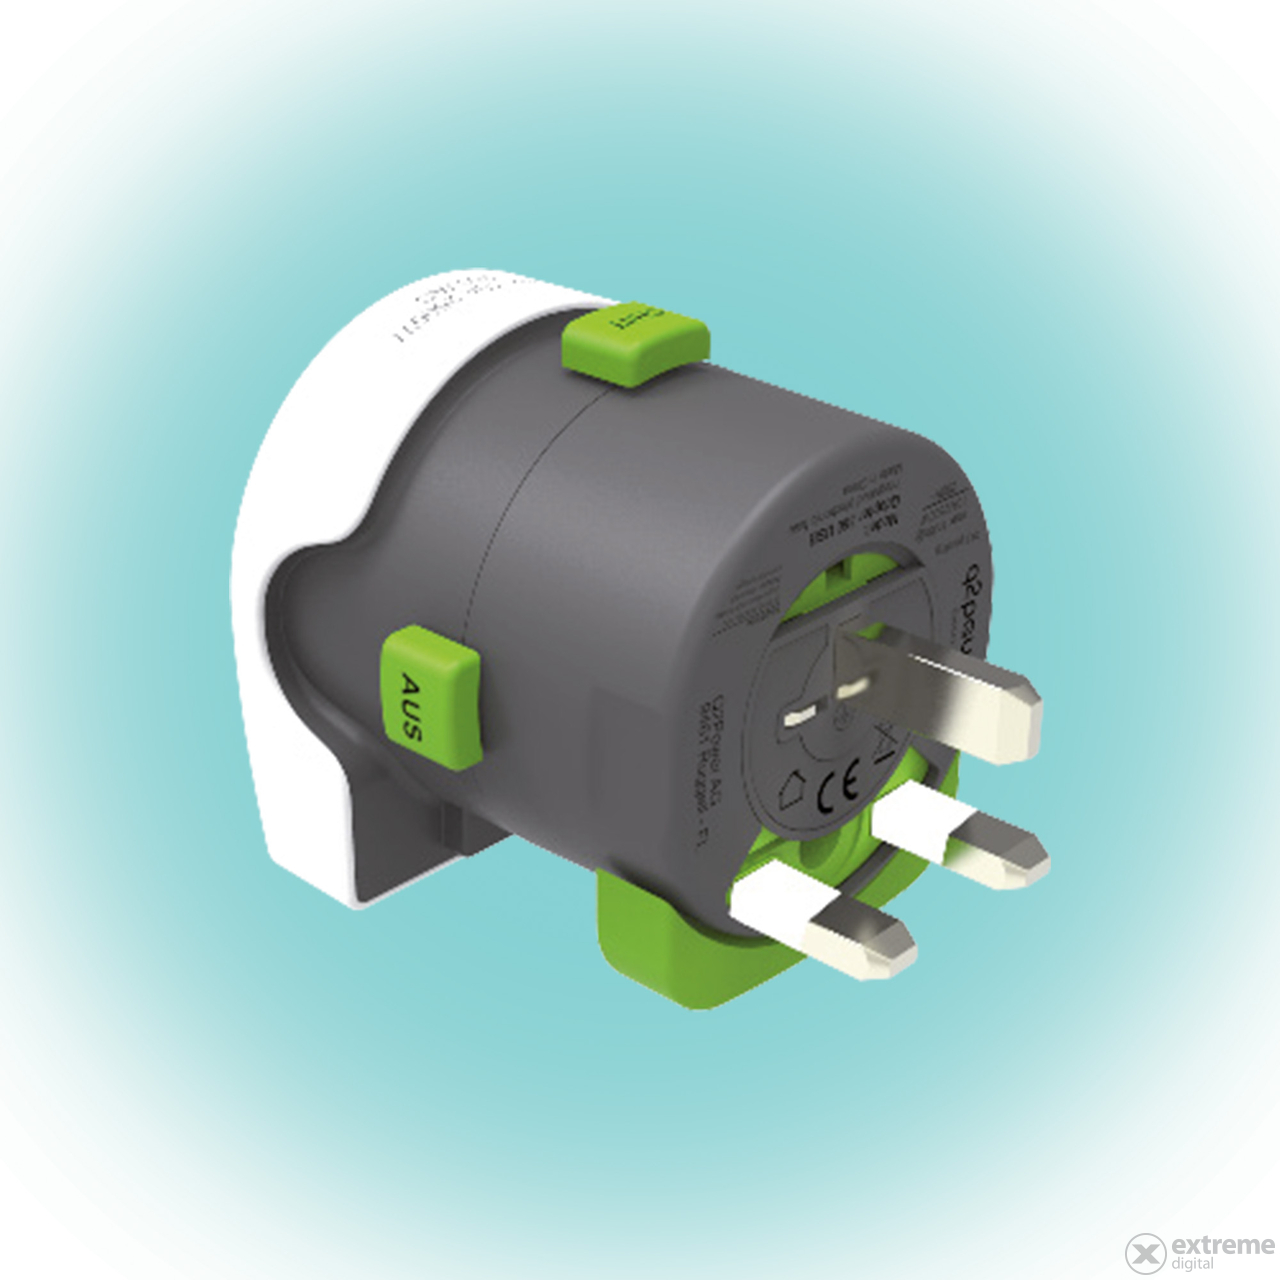 "Q2 Power ""Qdapter 360"" utazóadapter"